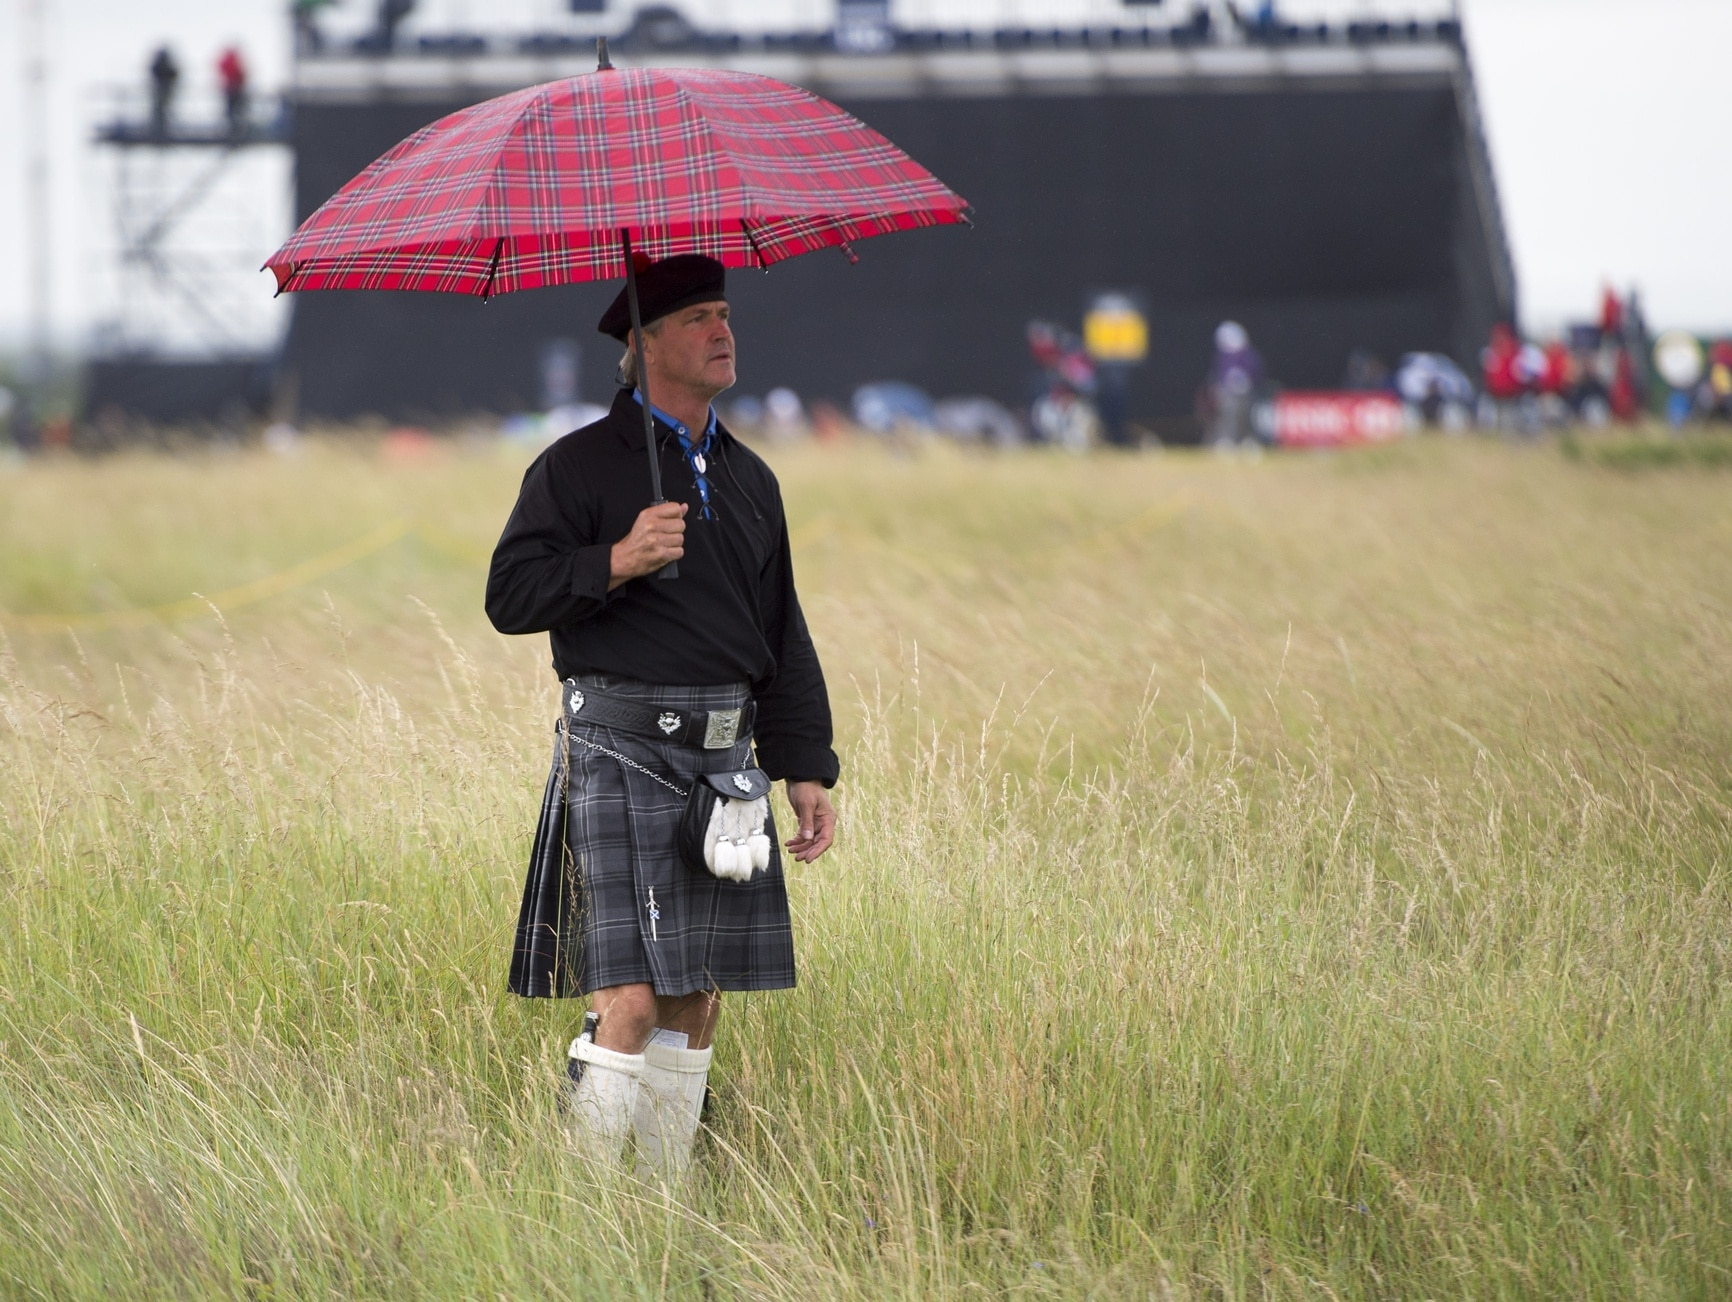 2016 British Open, Royal Troon